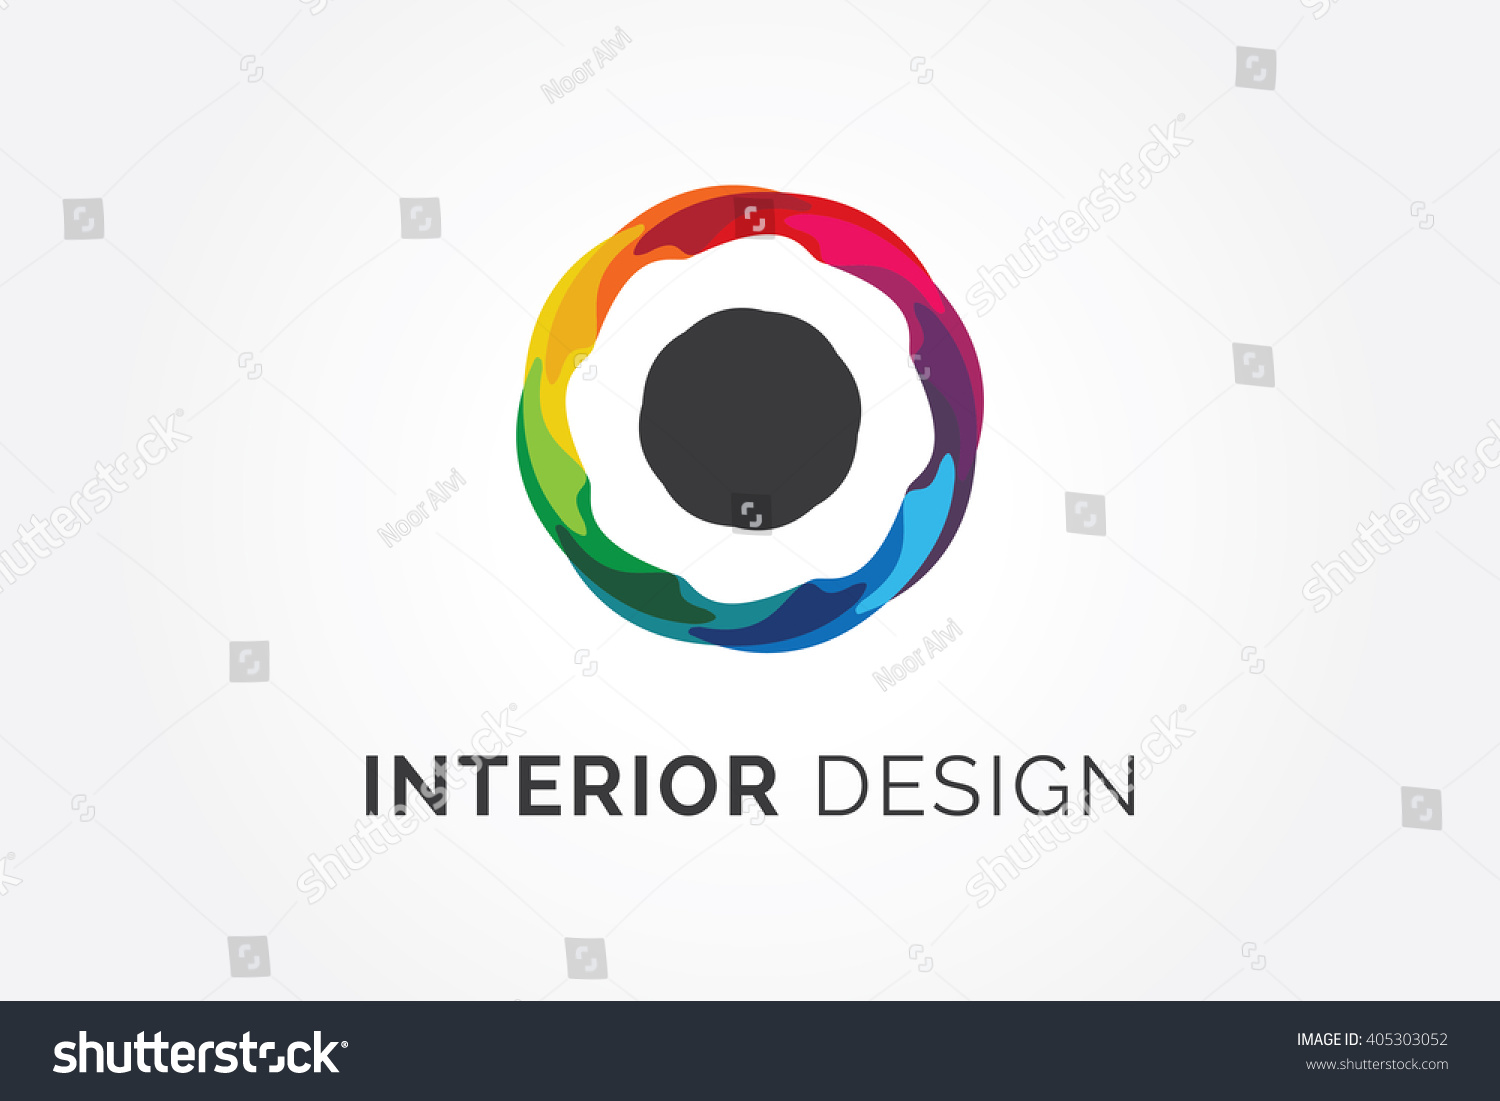 Interior design logo vector 28 images interior design for Interior design images vector